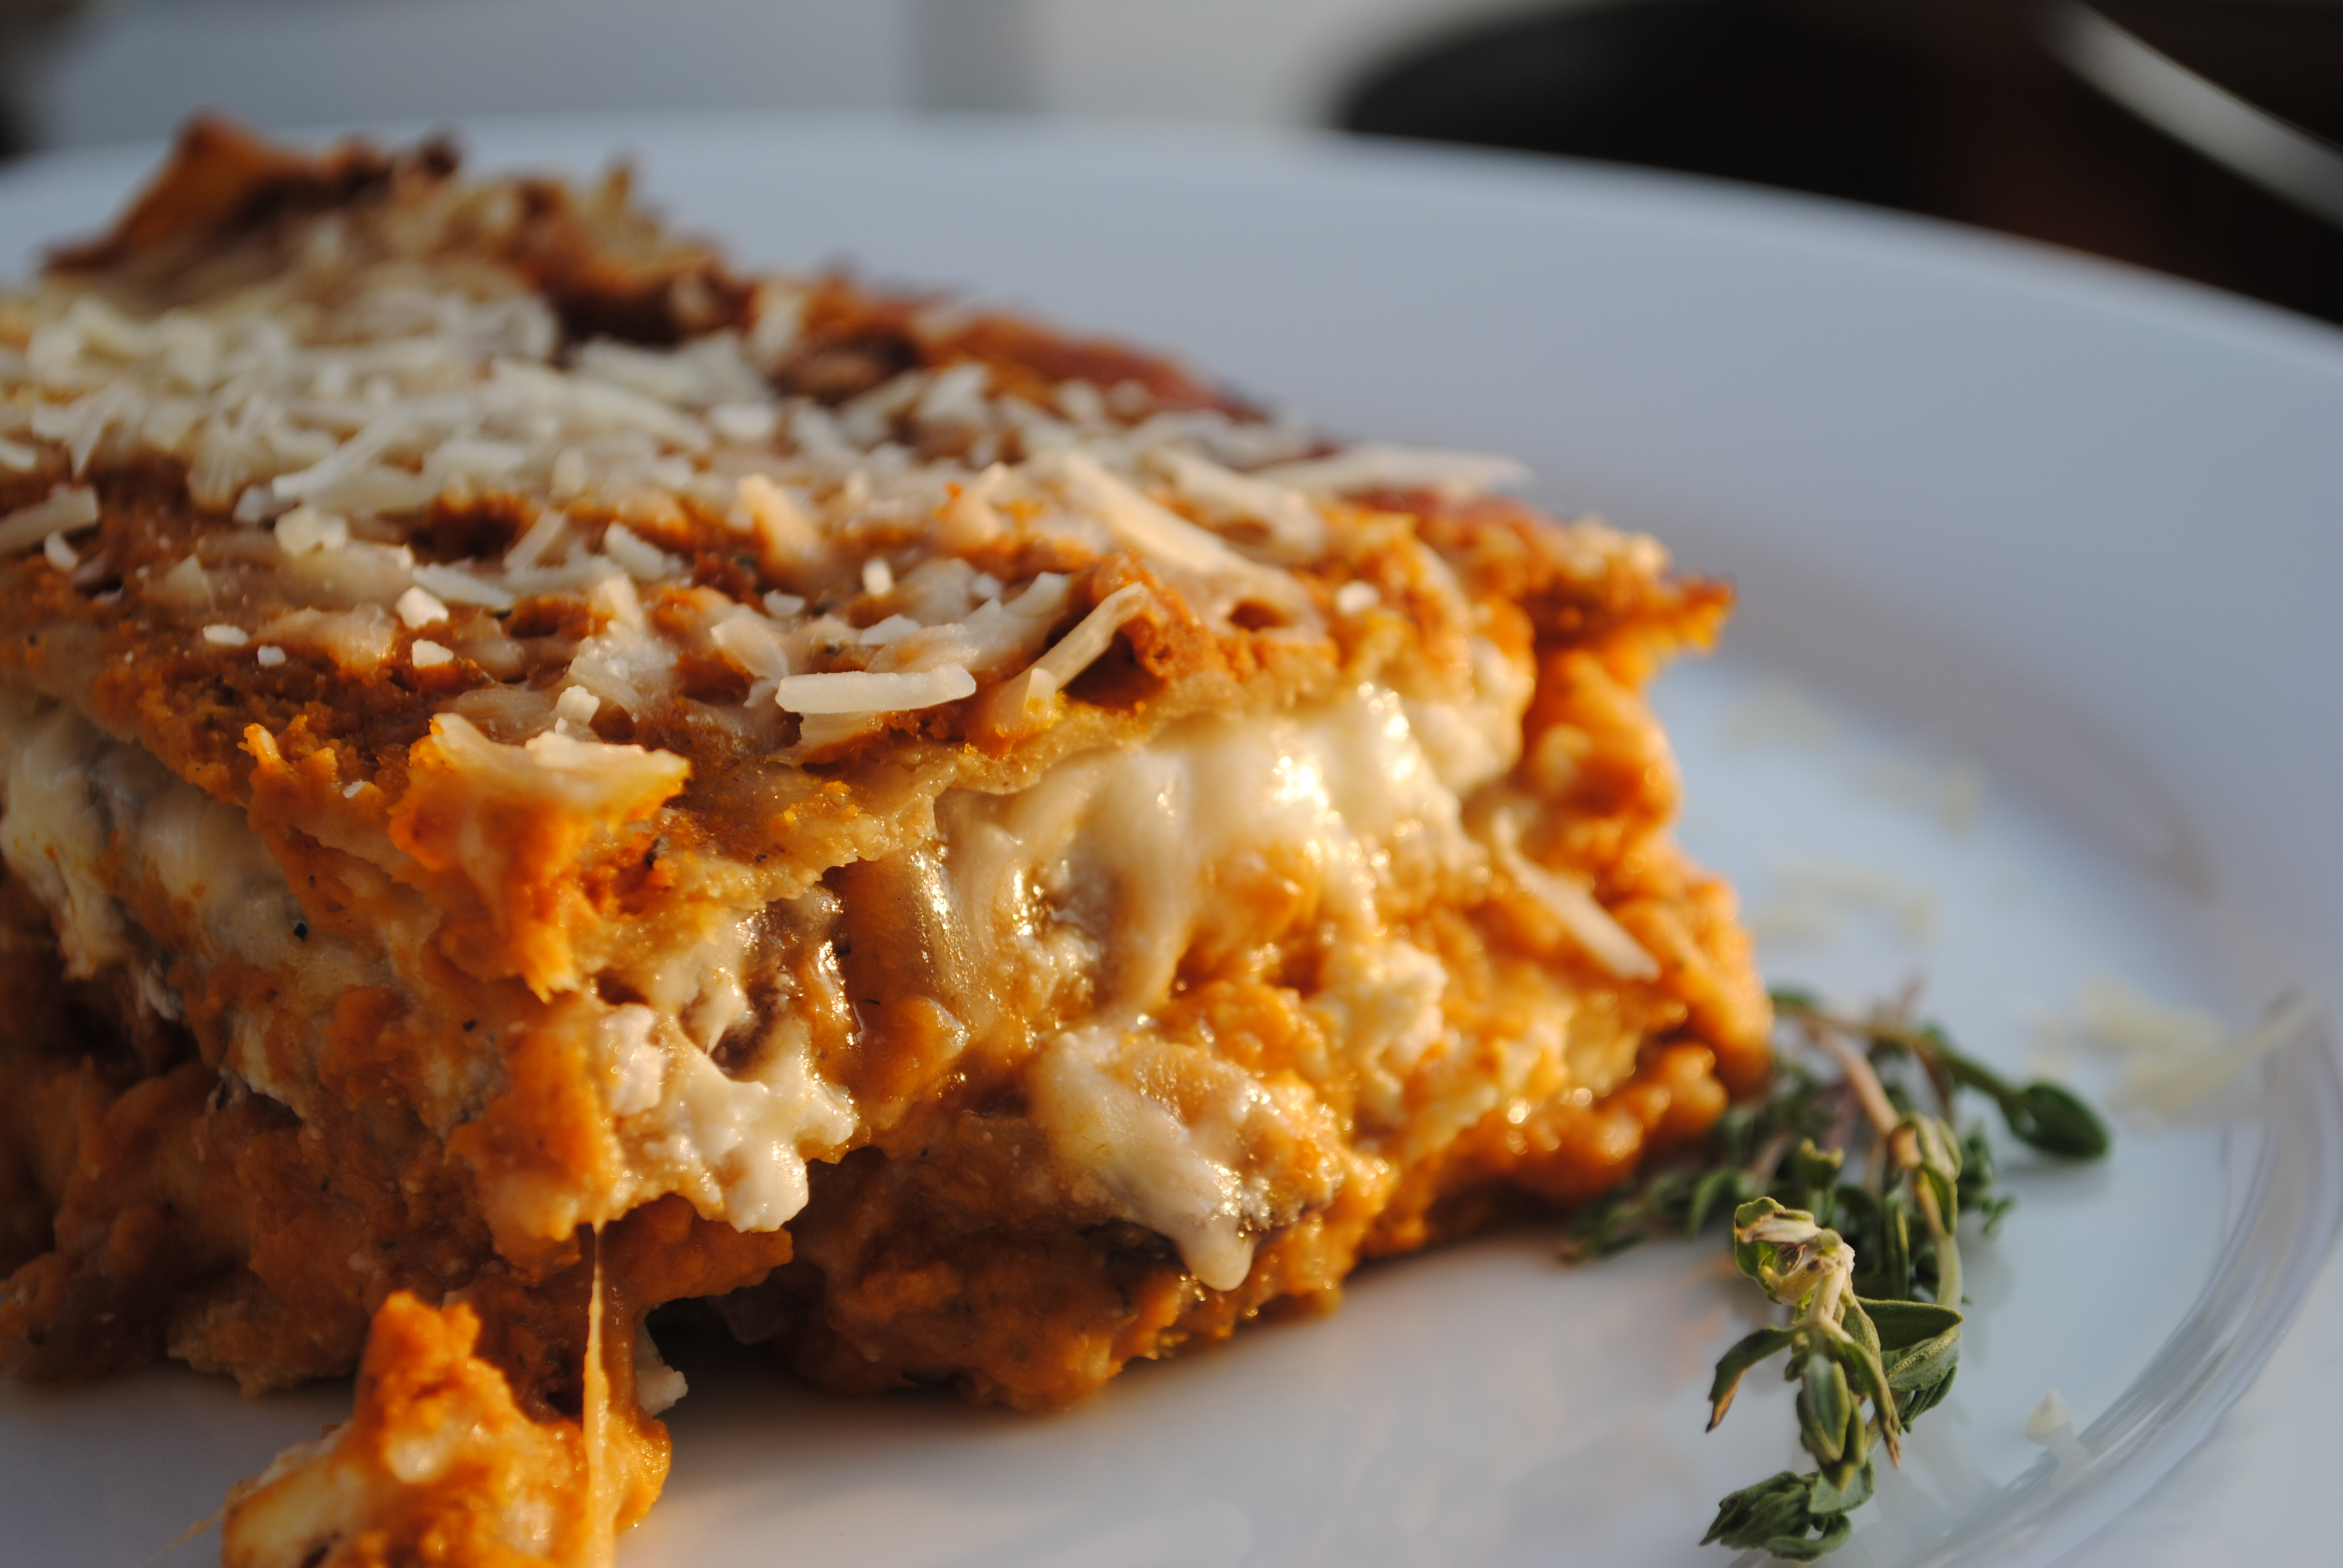 ... lasagne lasagne alla bolognese thousand layer lasagne thousand layer